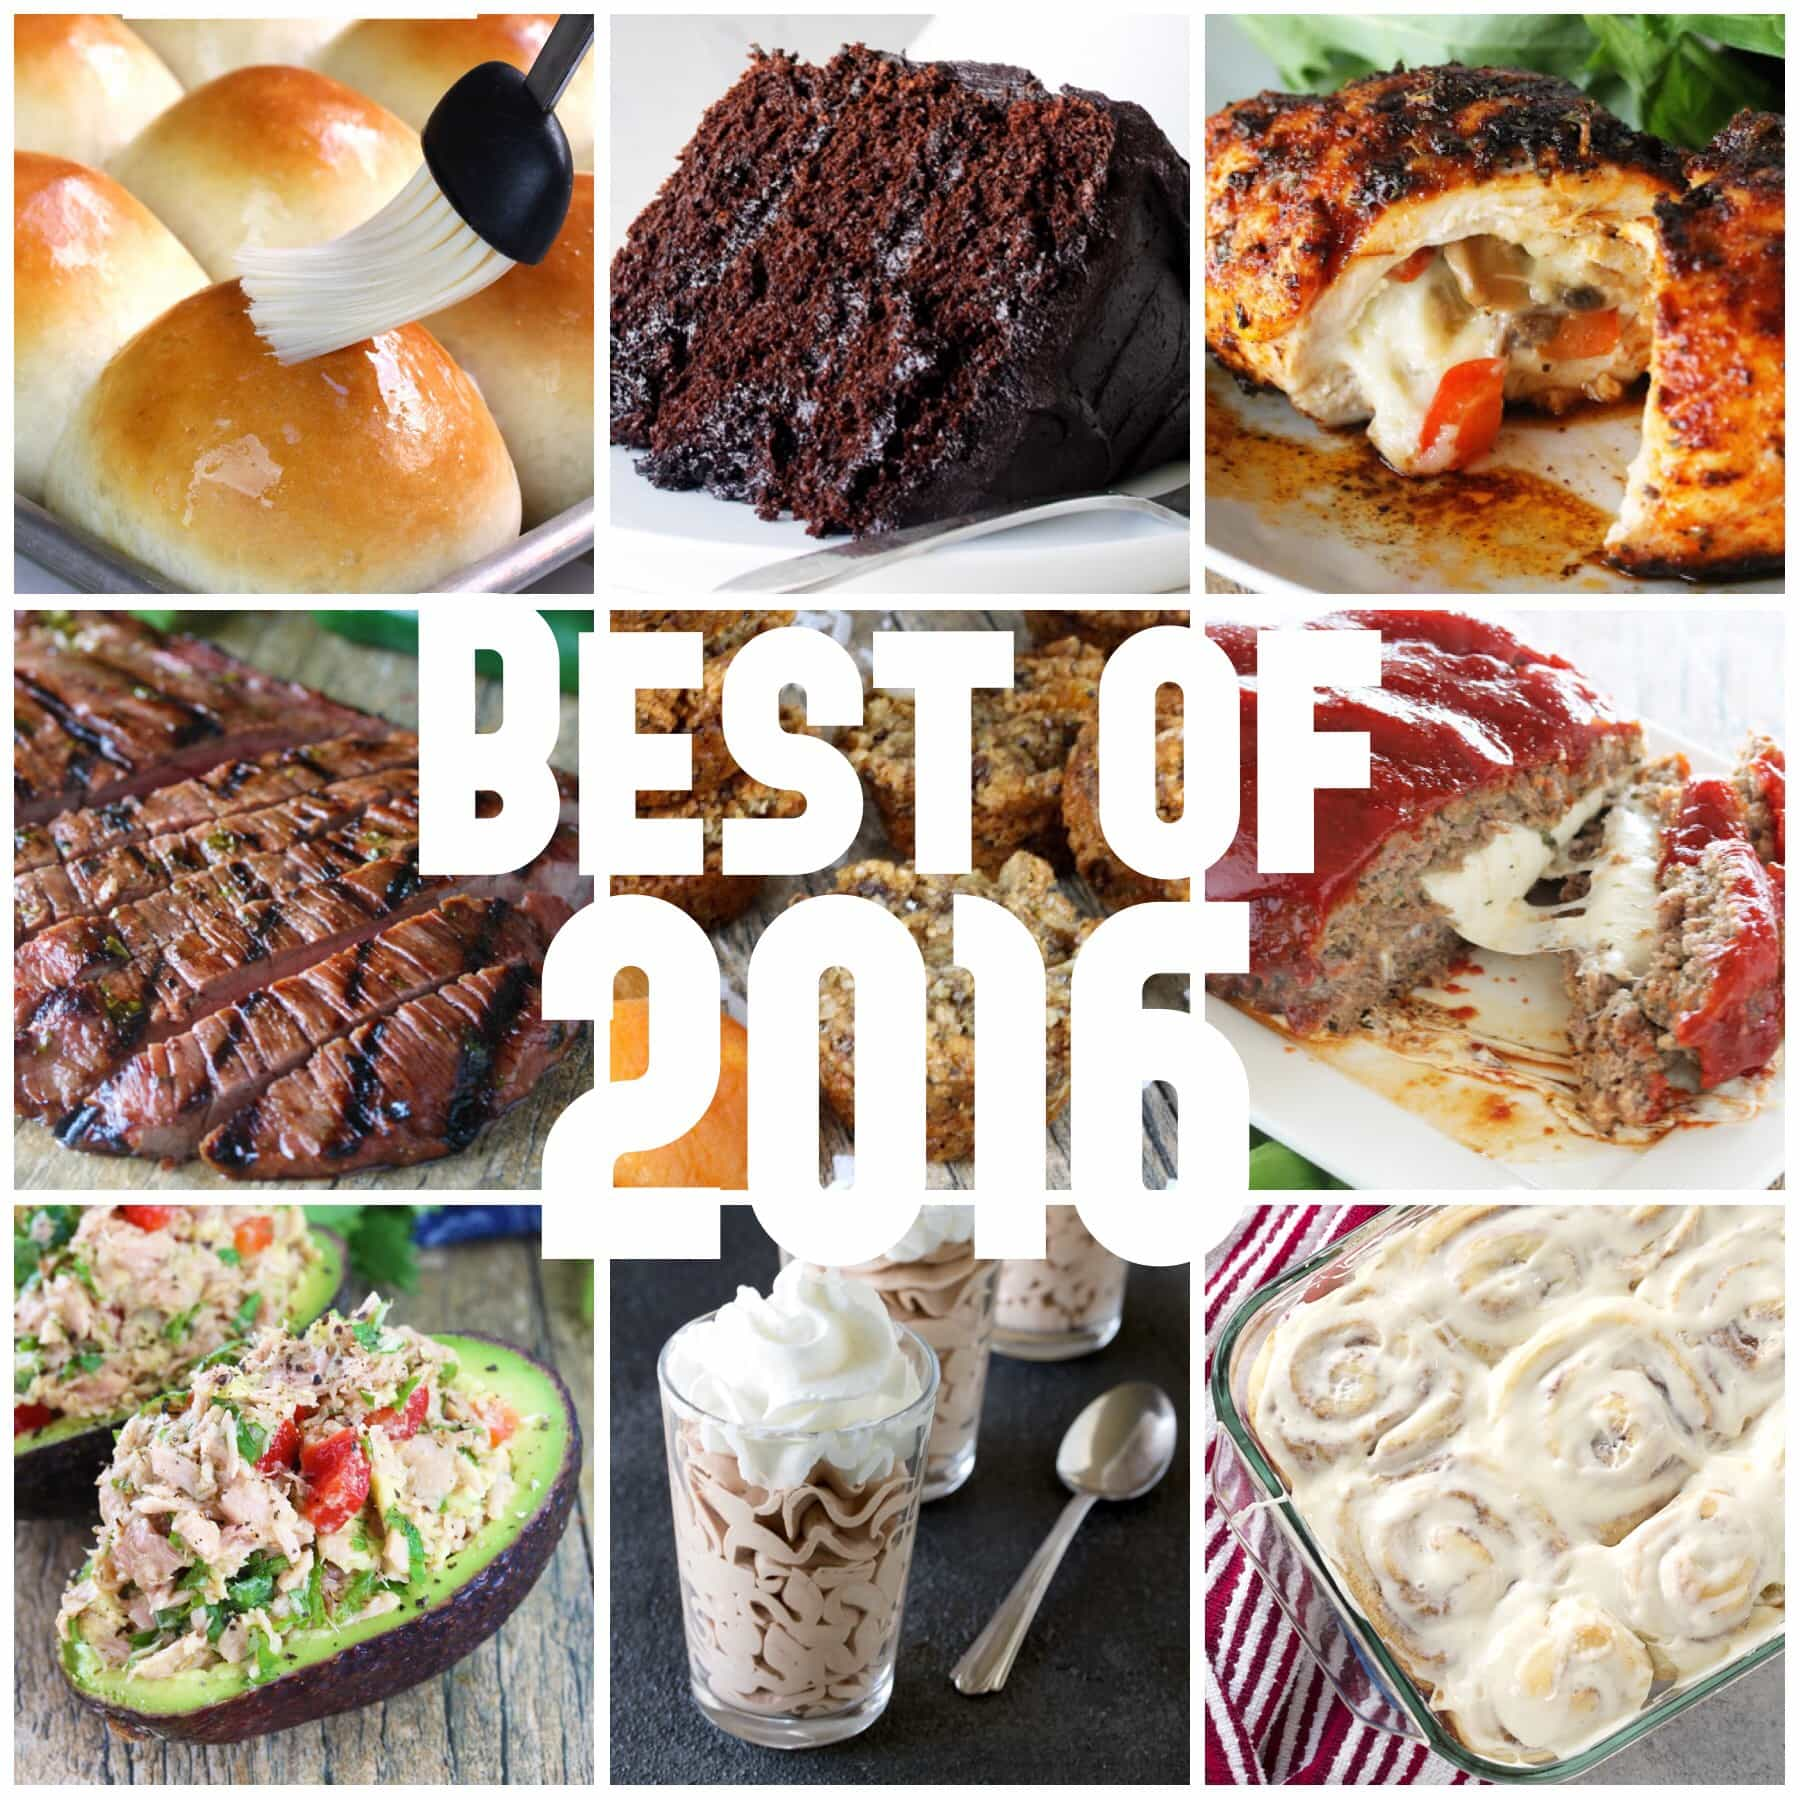 The top 10 most viewed recipes on www.thestayathomechef.com in 2016.